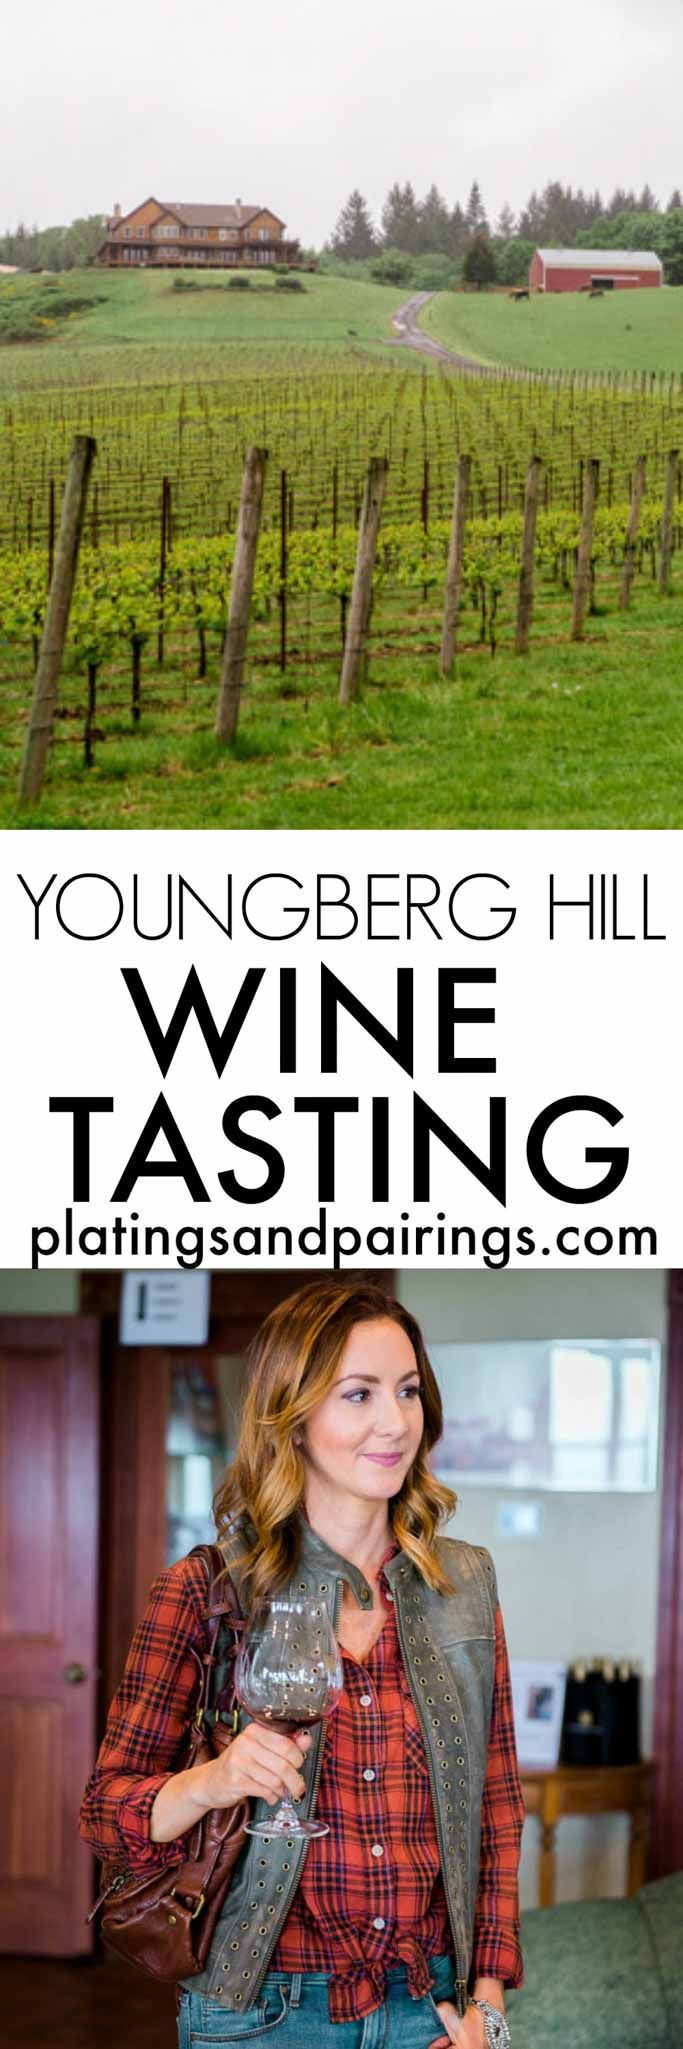 Youngberg Hill Vineyard believes in producing unmanipulated wines - allowing the true nature of the vintage to shine through. Visit them in McMinnville, Oregon for a tasting of Pinot Noir, Pinot Gris and Pinot Blanc | platingsandpairin...